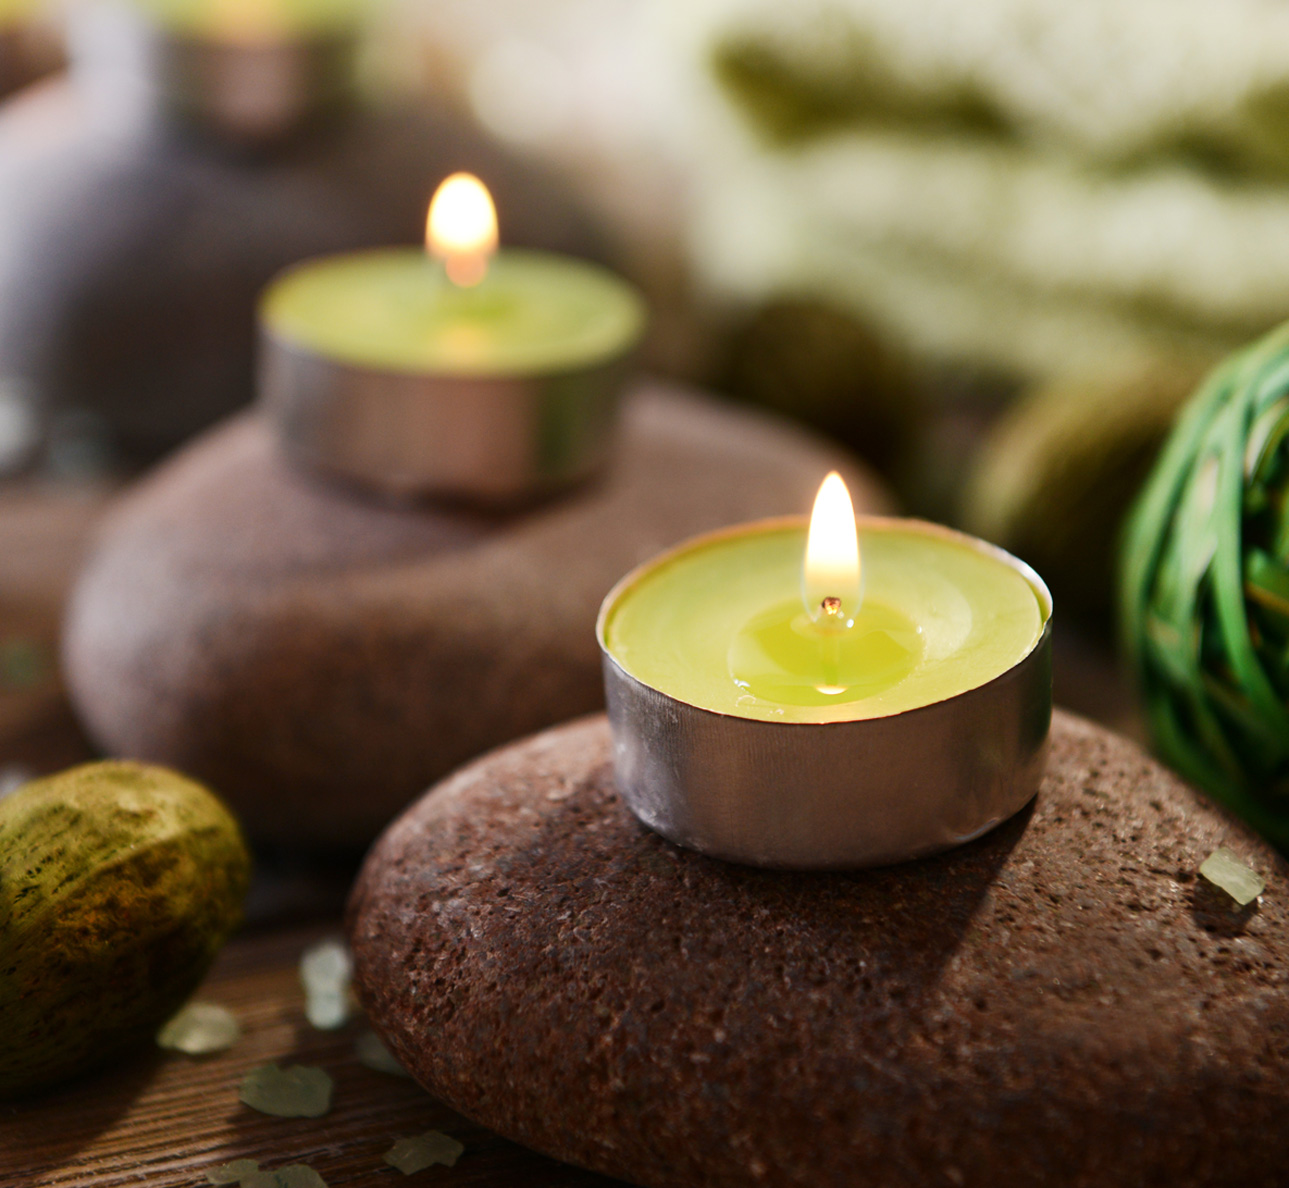 Popular Candle Types, Popular Candles, Candle Making